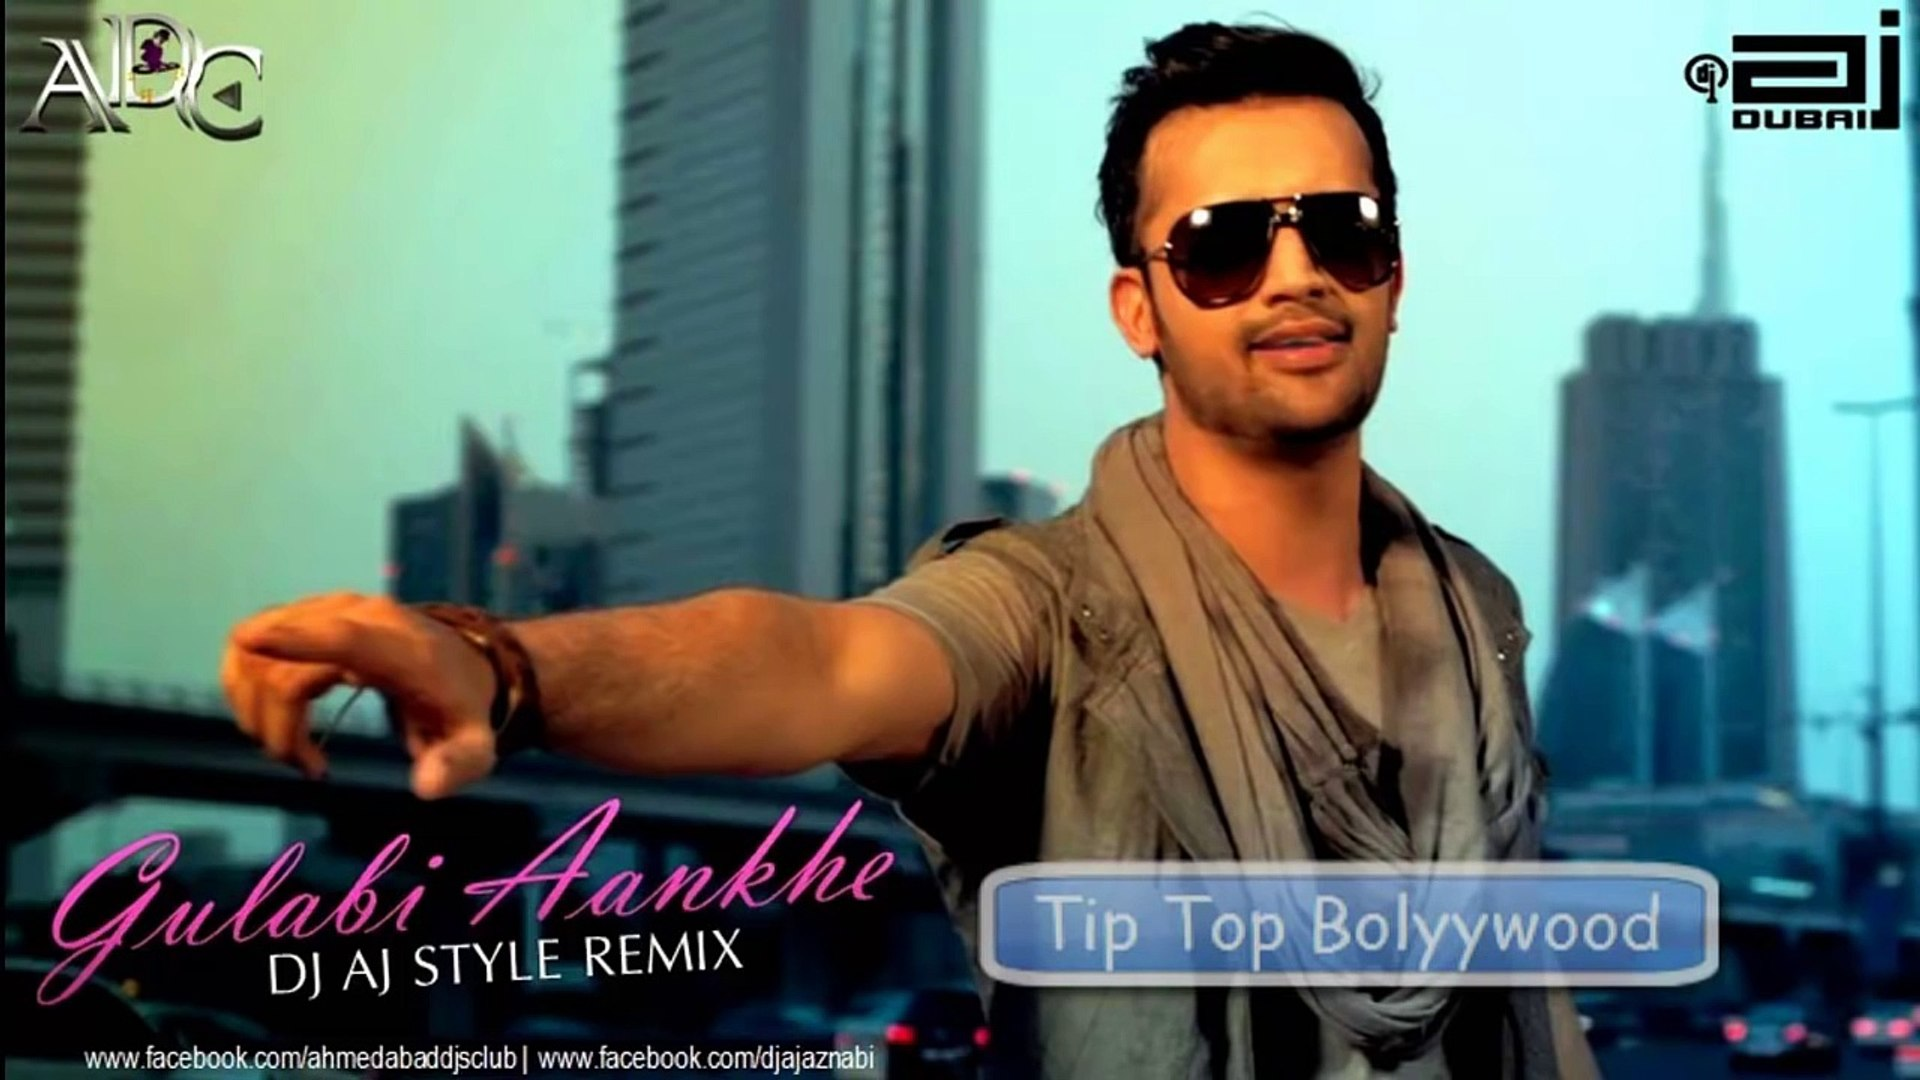 Remix Songs Indian 2014 Dailymotion idea gallery